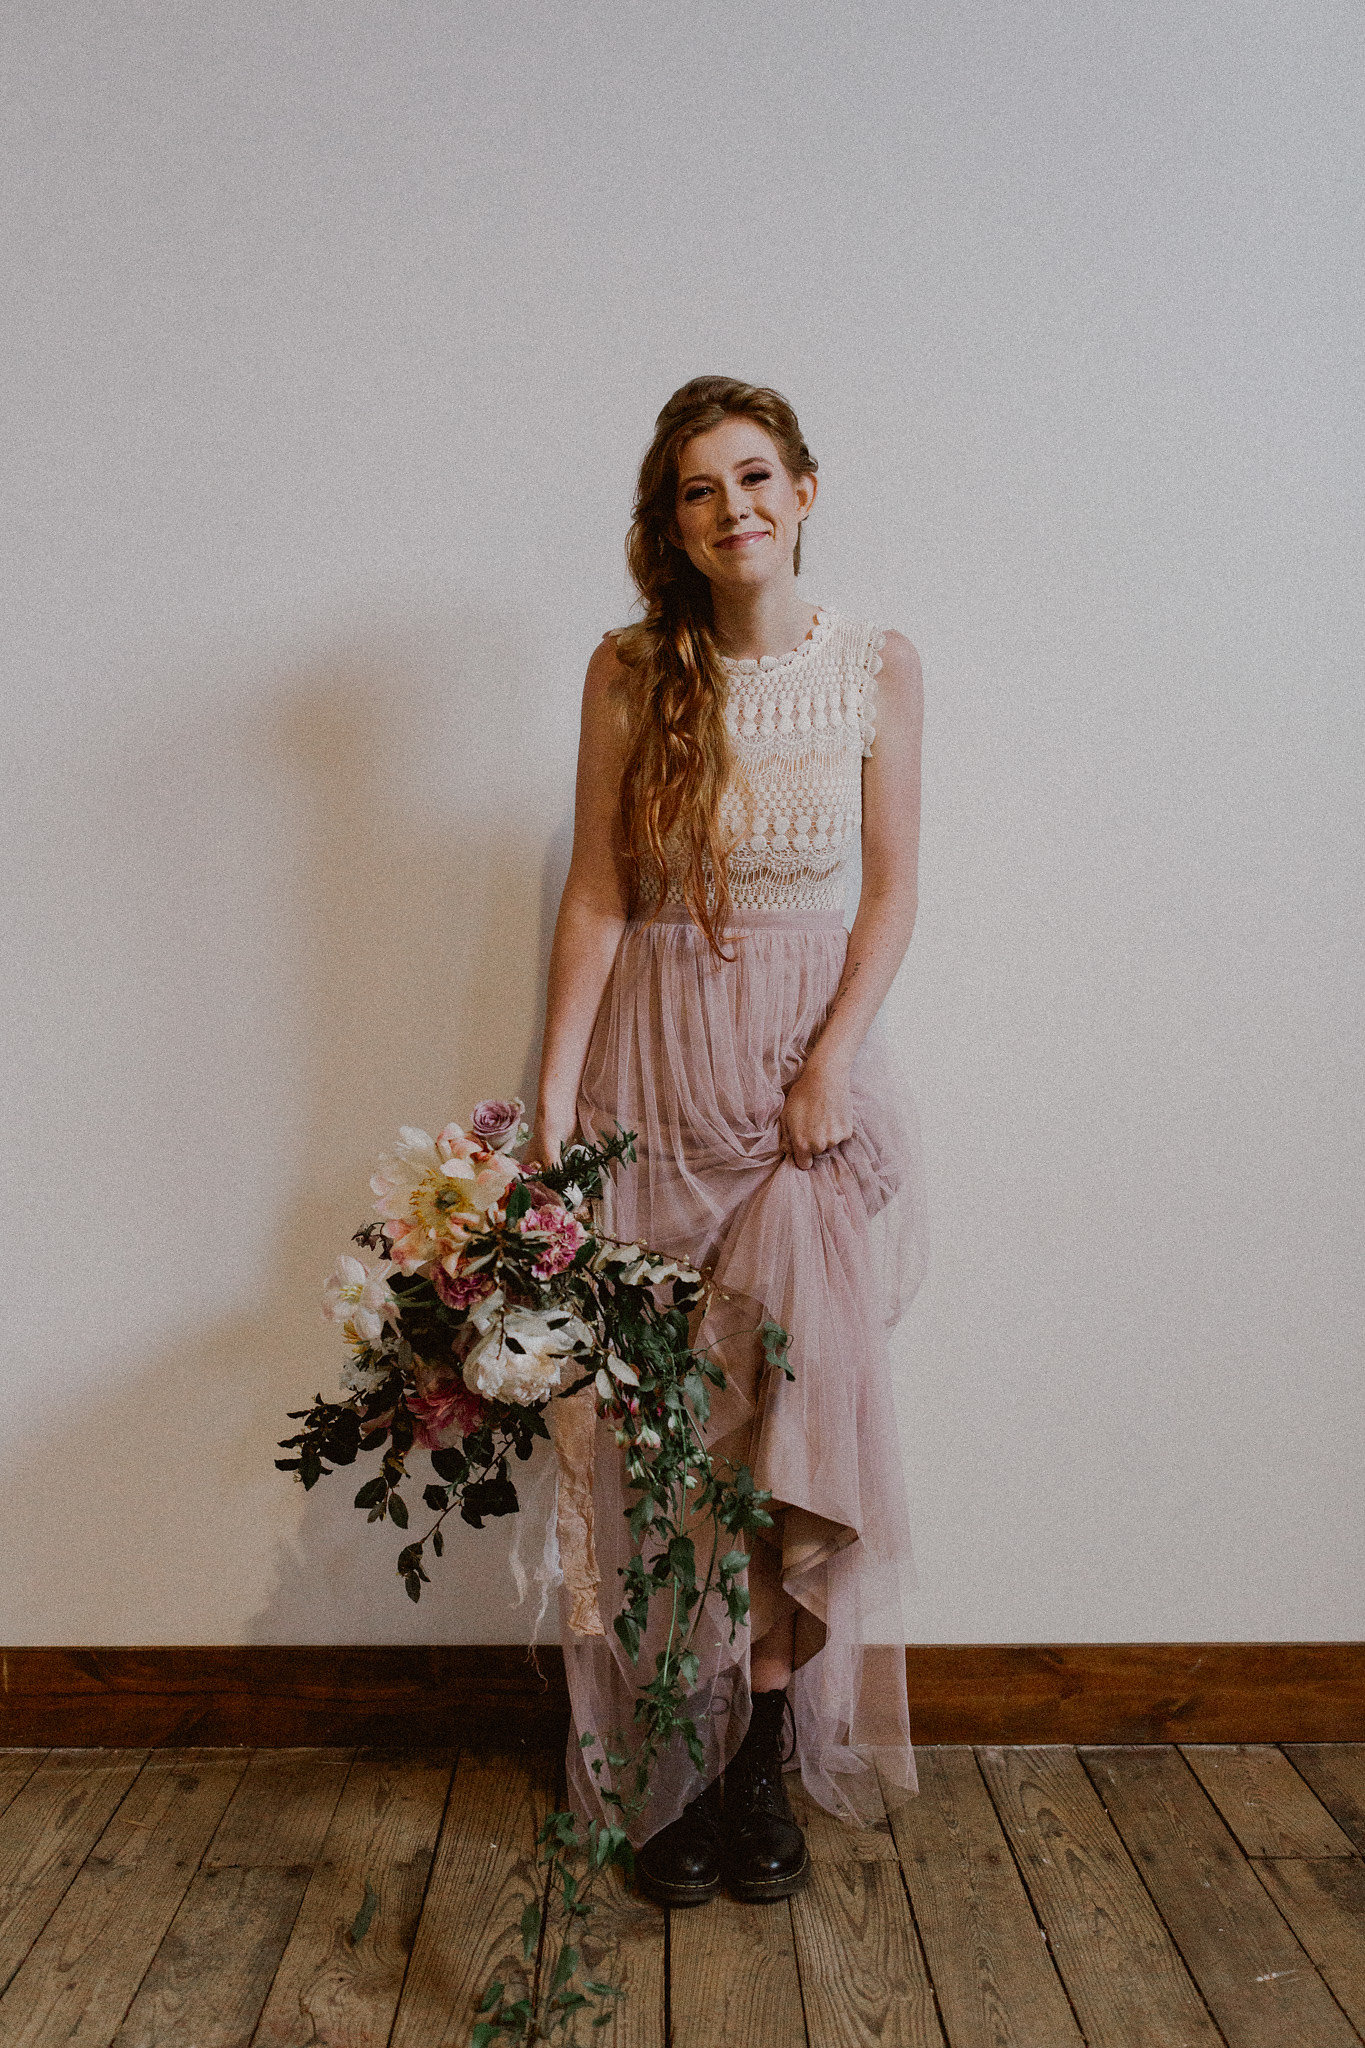 Rock n Roll Bride Boots Shoes | College Station hair + makeup artist Naturally Flawless | Bryan, Texas | Pink + Purple + Vintage + Romantic + Blush + crochet + two piece wedding dress | Wedding Coordinator Epoch Co+